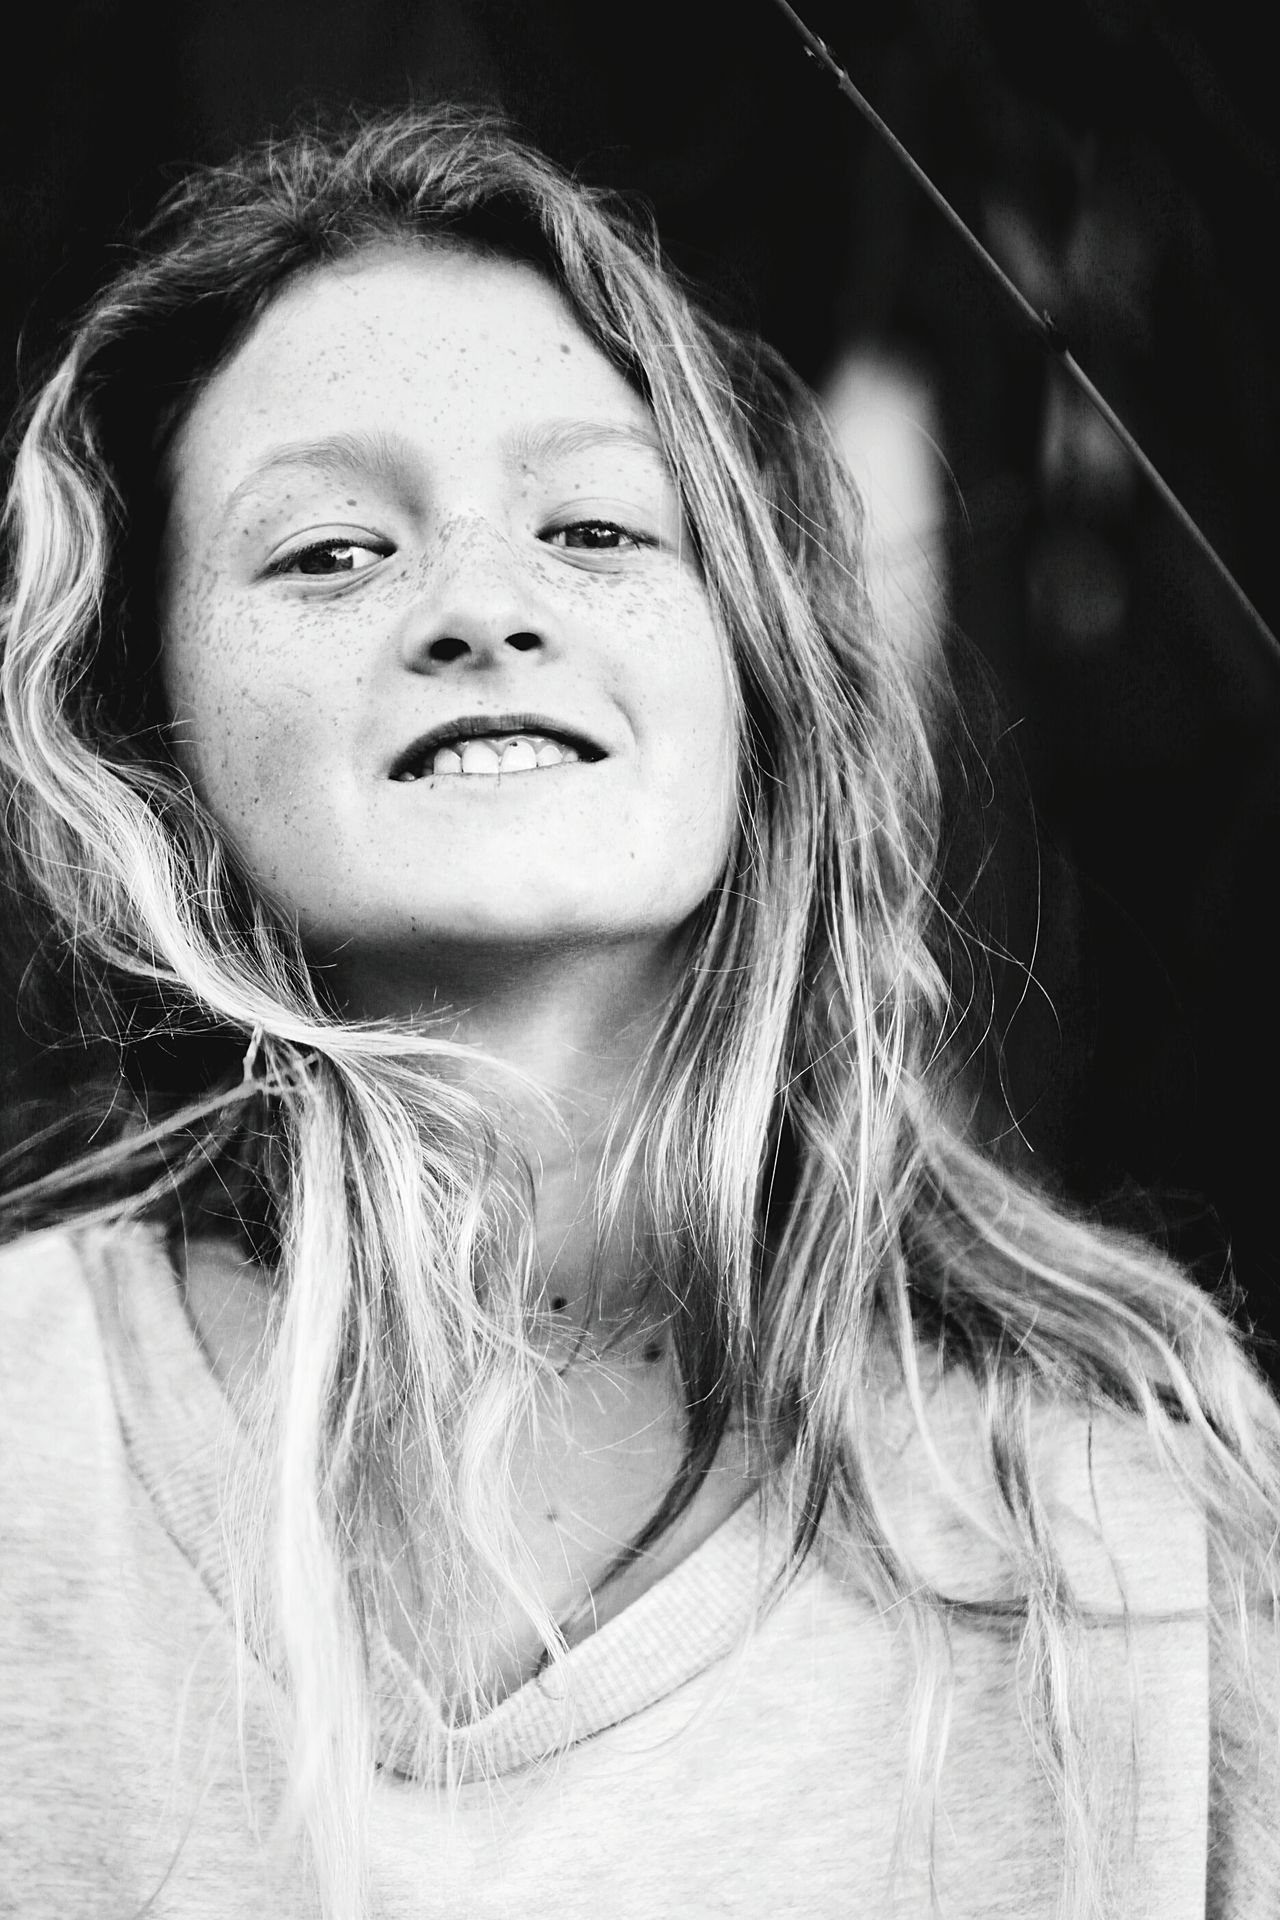 Portrait Girl One Girl Only Teen Teenager Teenage Girls Long Hair Close-up One Person Blond Hair People Beautiful People Looking At Camera Freckle Freckles Freckled Girl Expression Beauty Fashion Youth Blackandwhite Black And White Black & White Beautiful Girl EyeEmNewHere Resist The Portraitist - 2017 EyeEm Awards